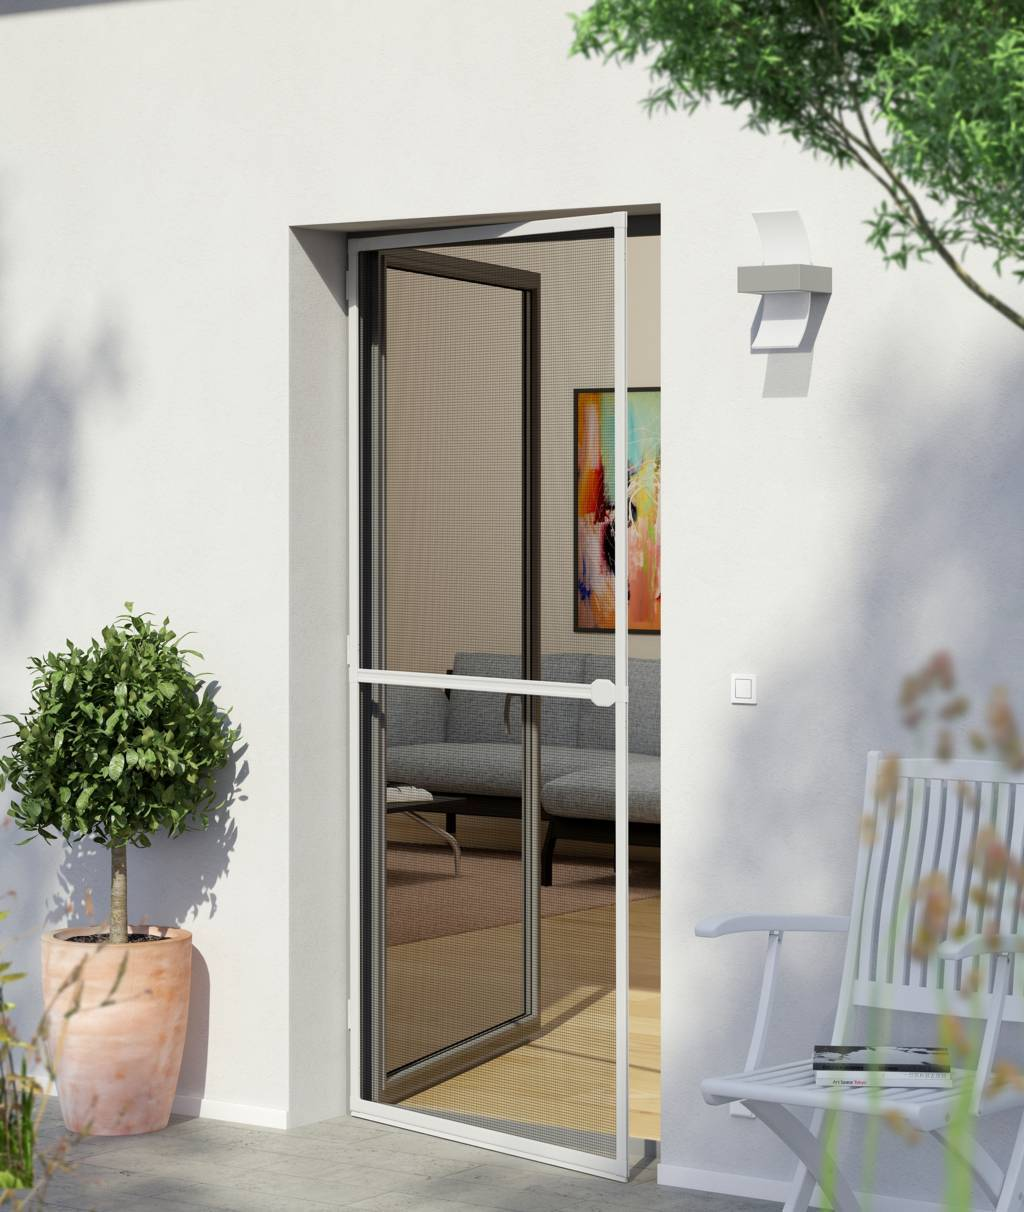 Hinged Fly Amp Insect Screen Door Newblinds Co Uk